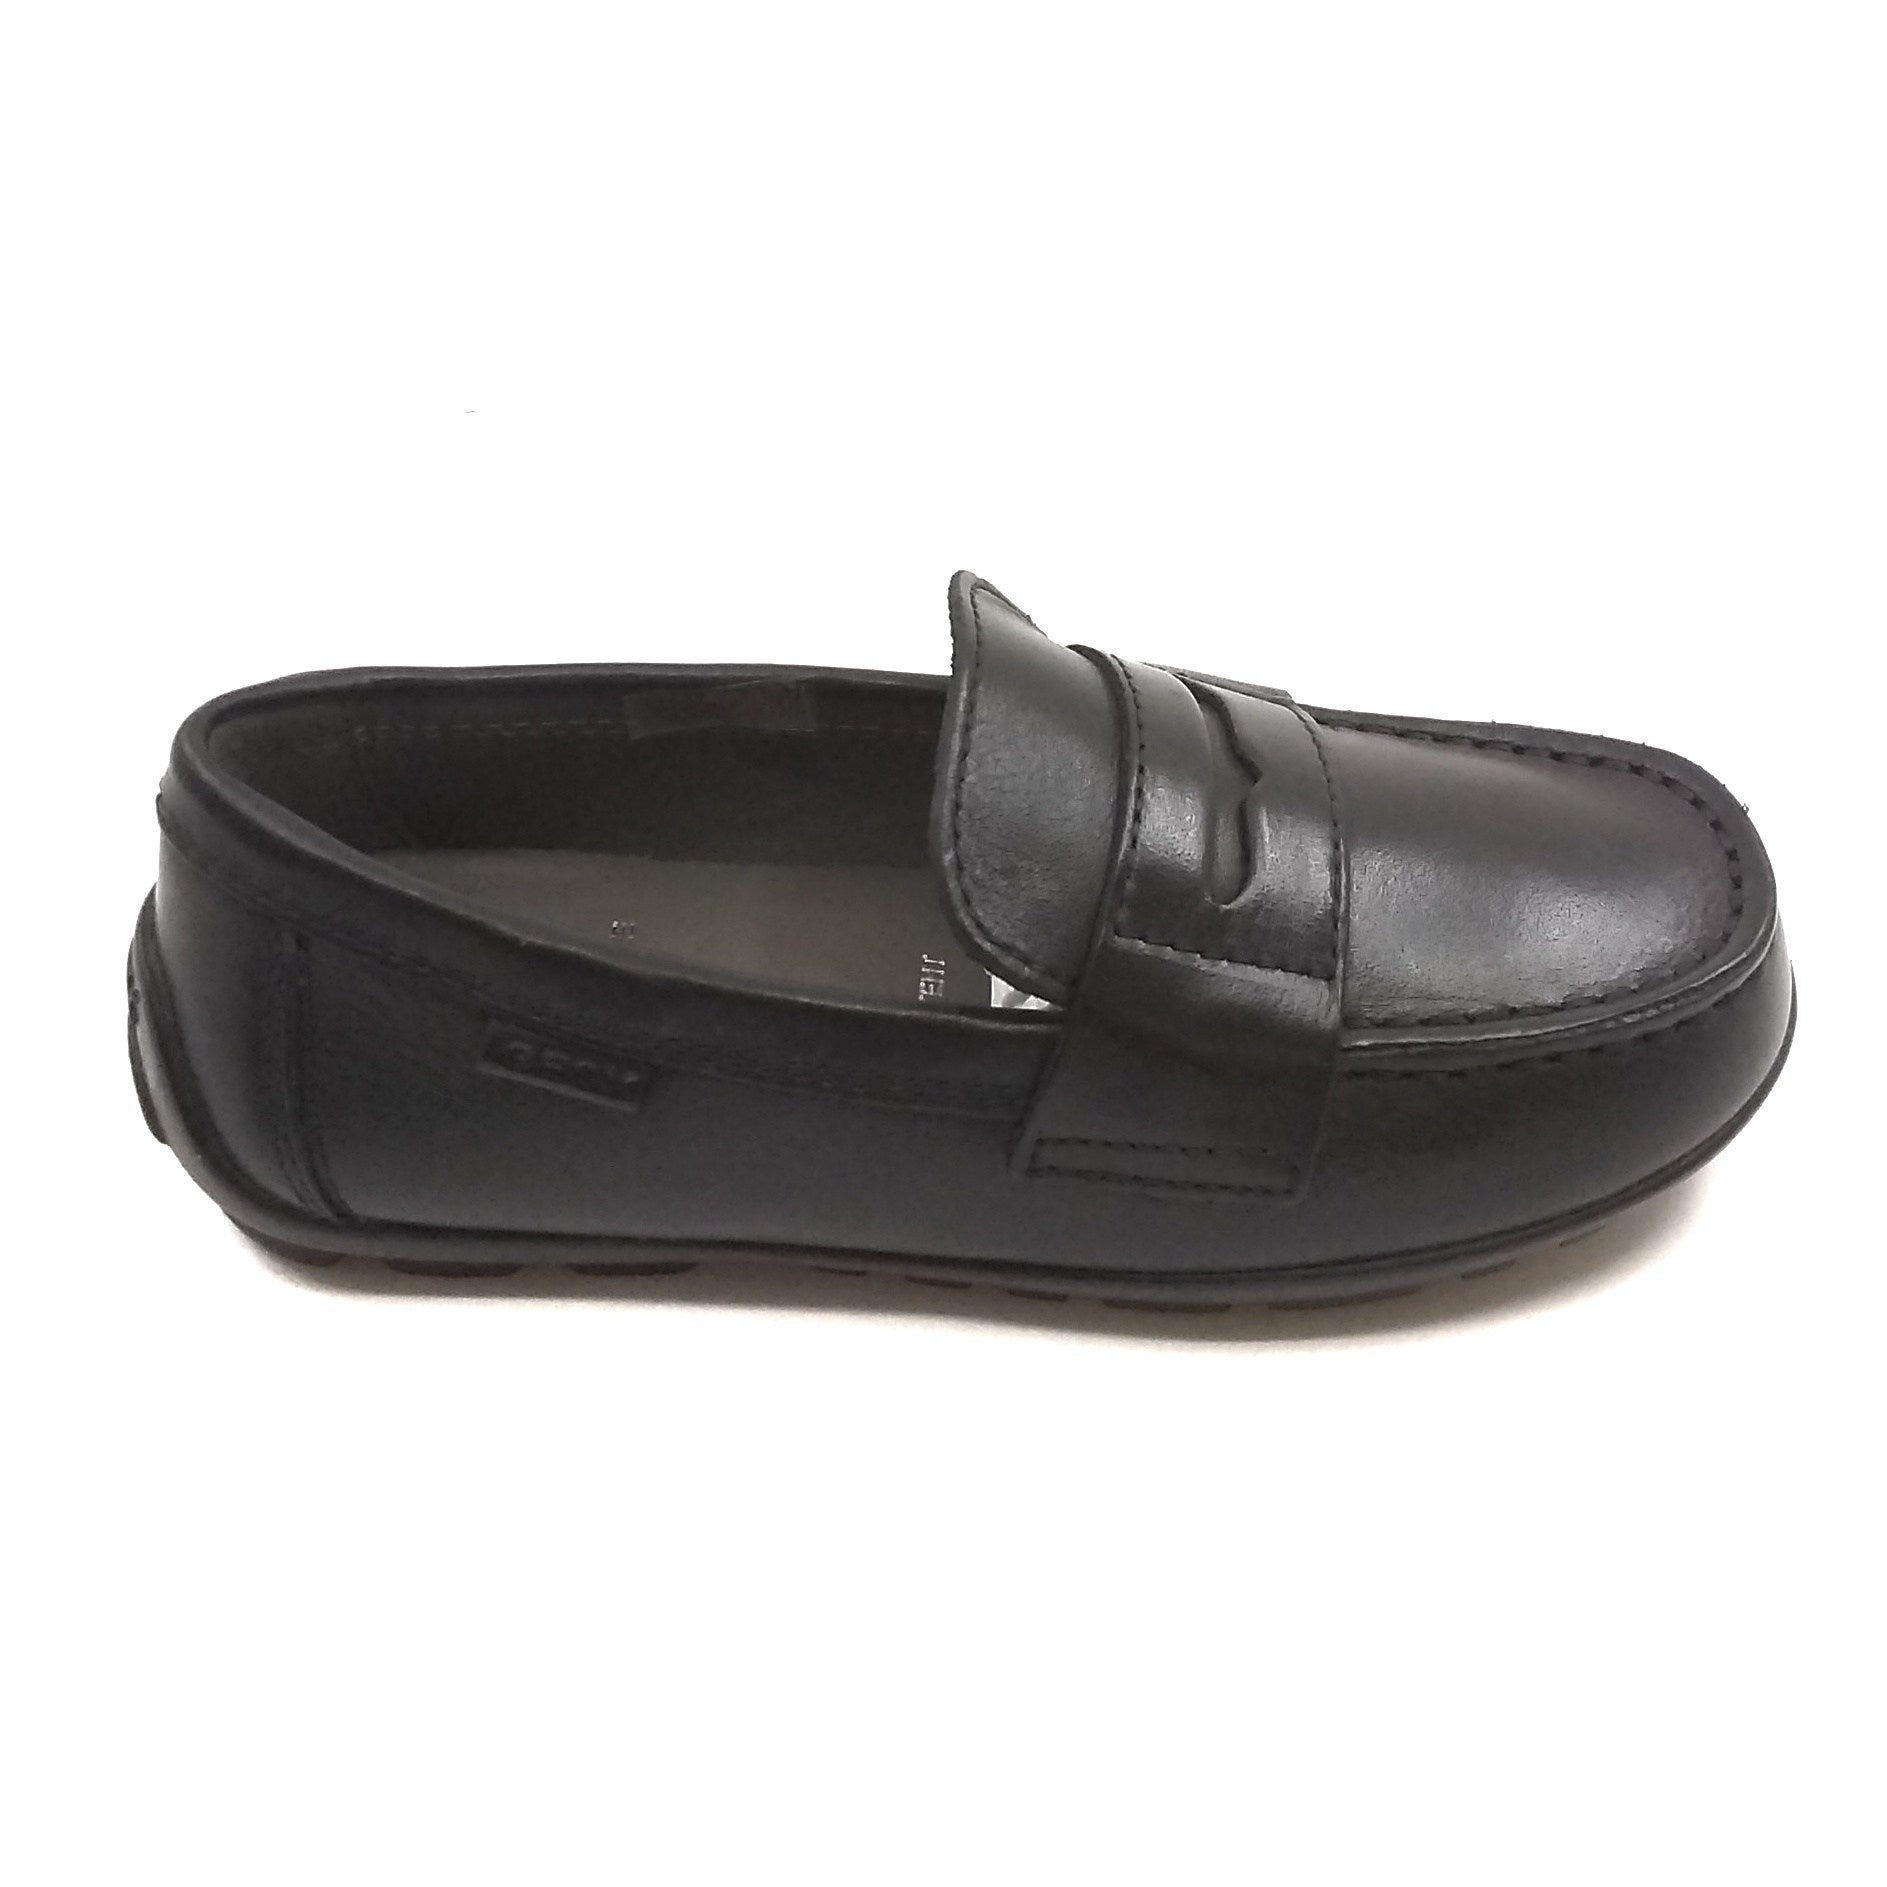 Geox Black Plain Penny Loafer